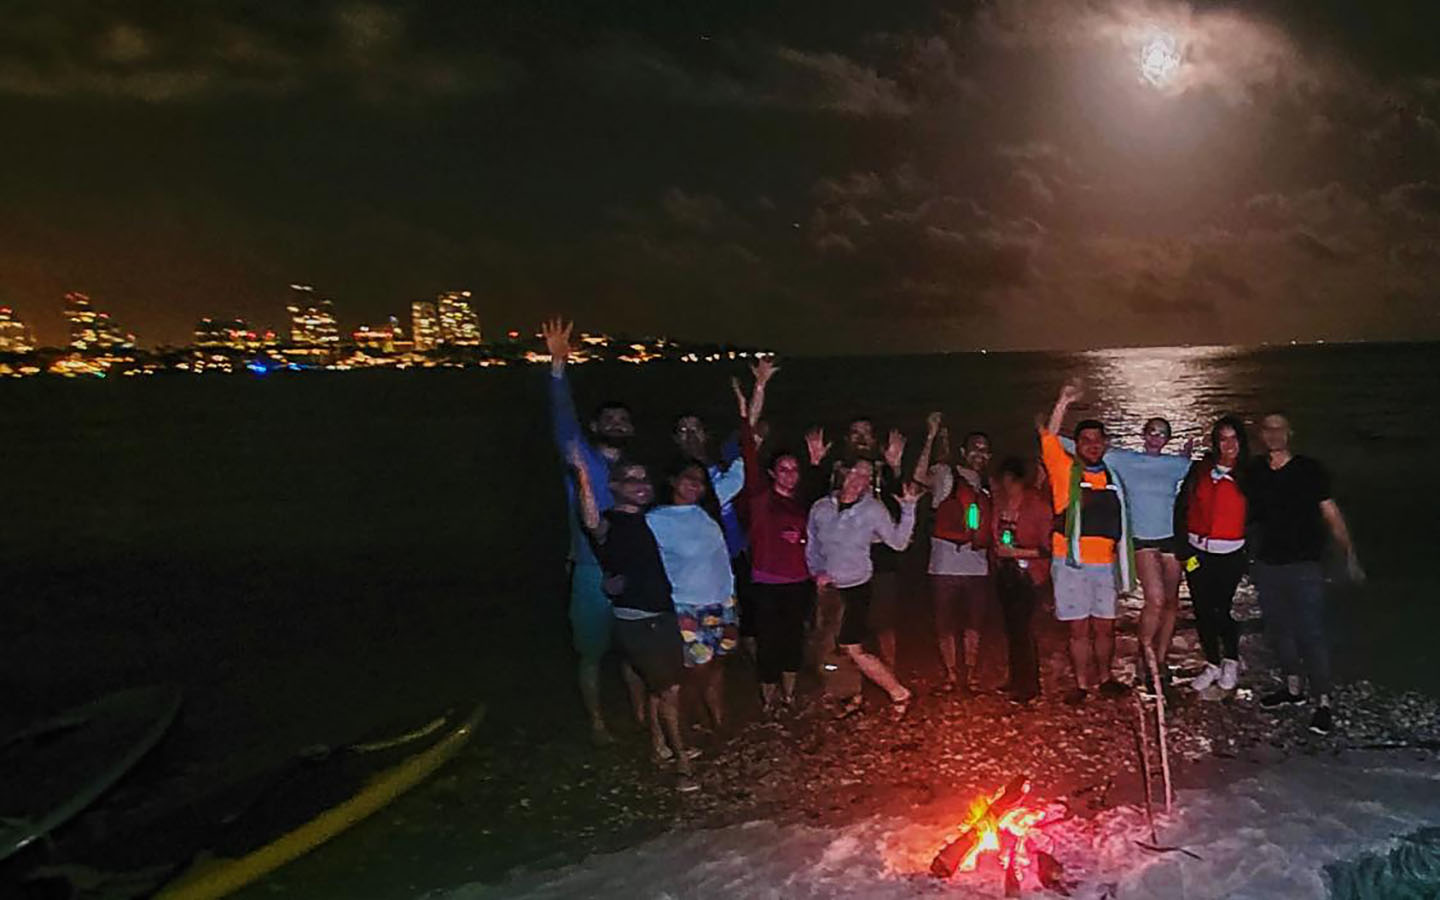 Full Moon Kayak & Paddleboard Tour - June 5th & 6th